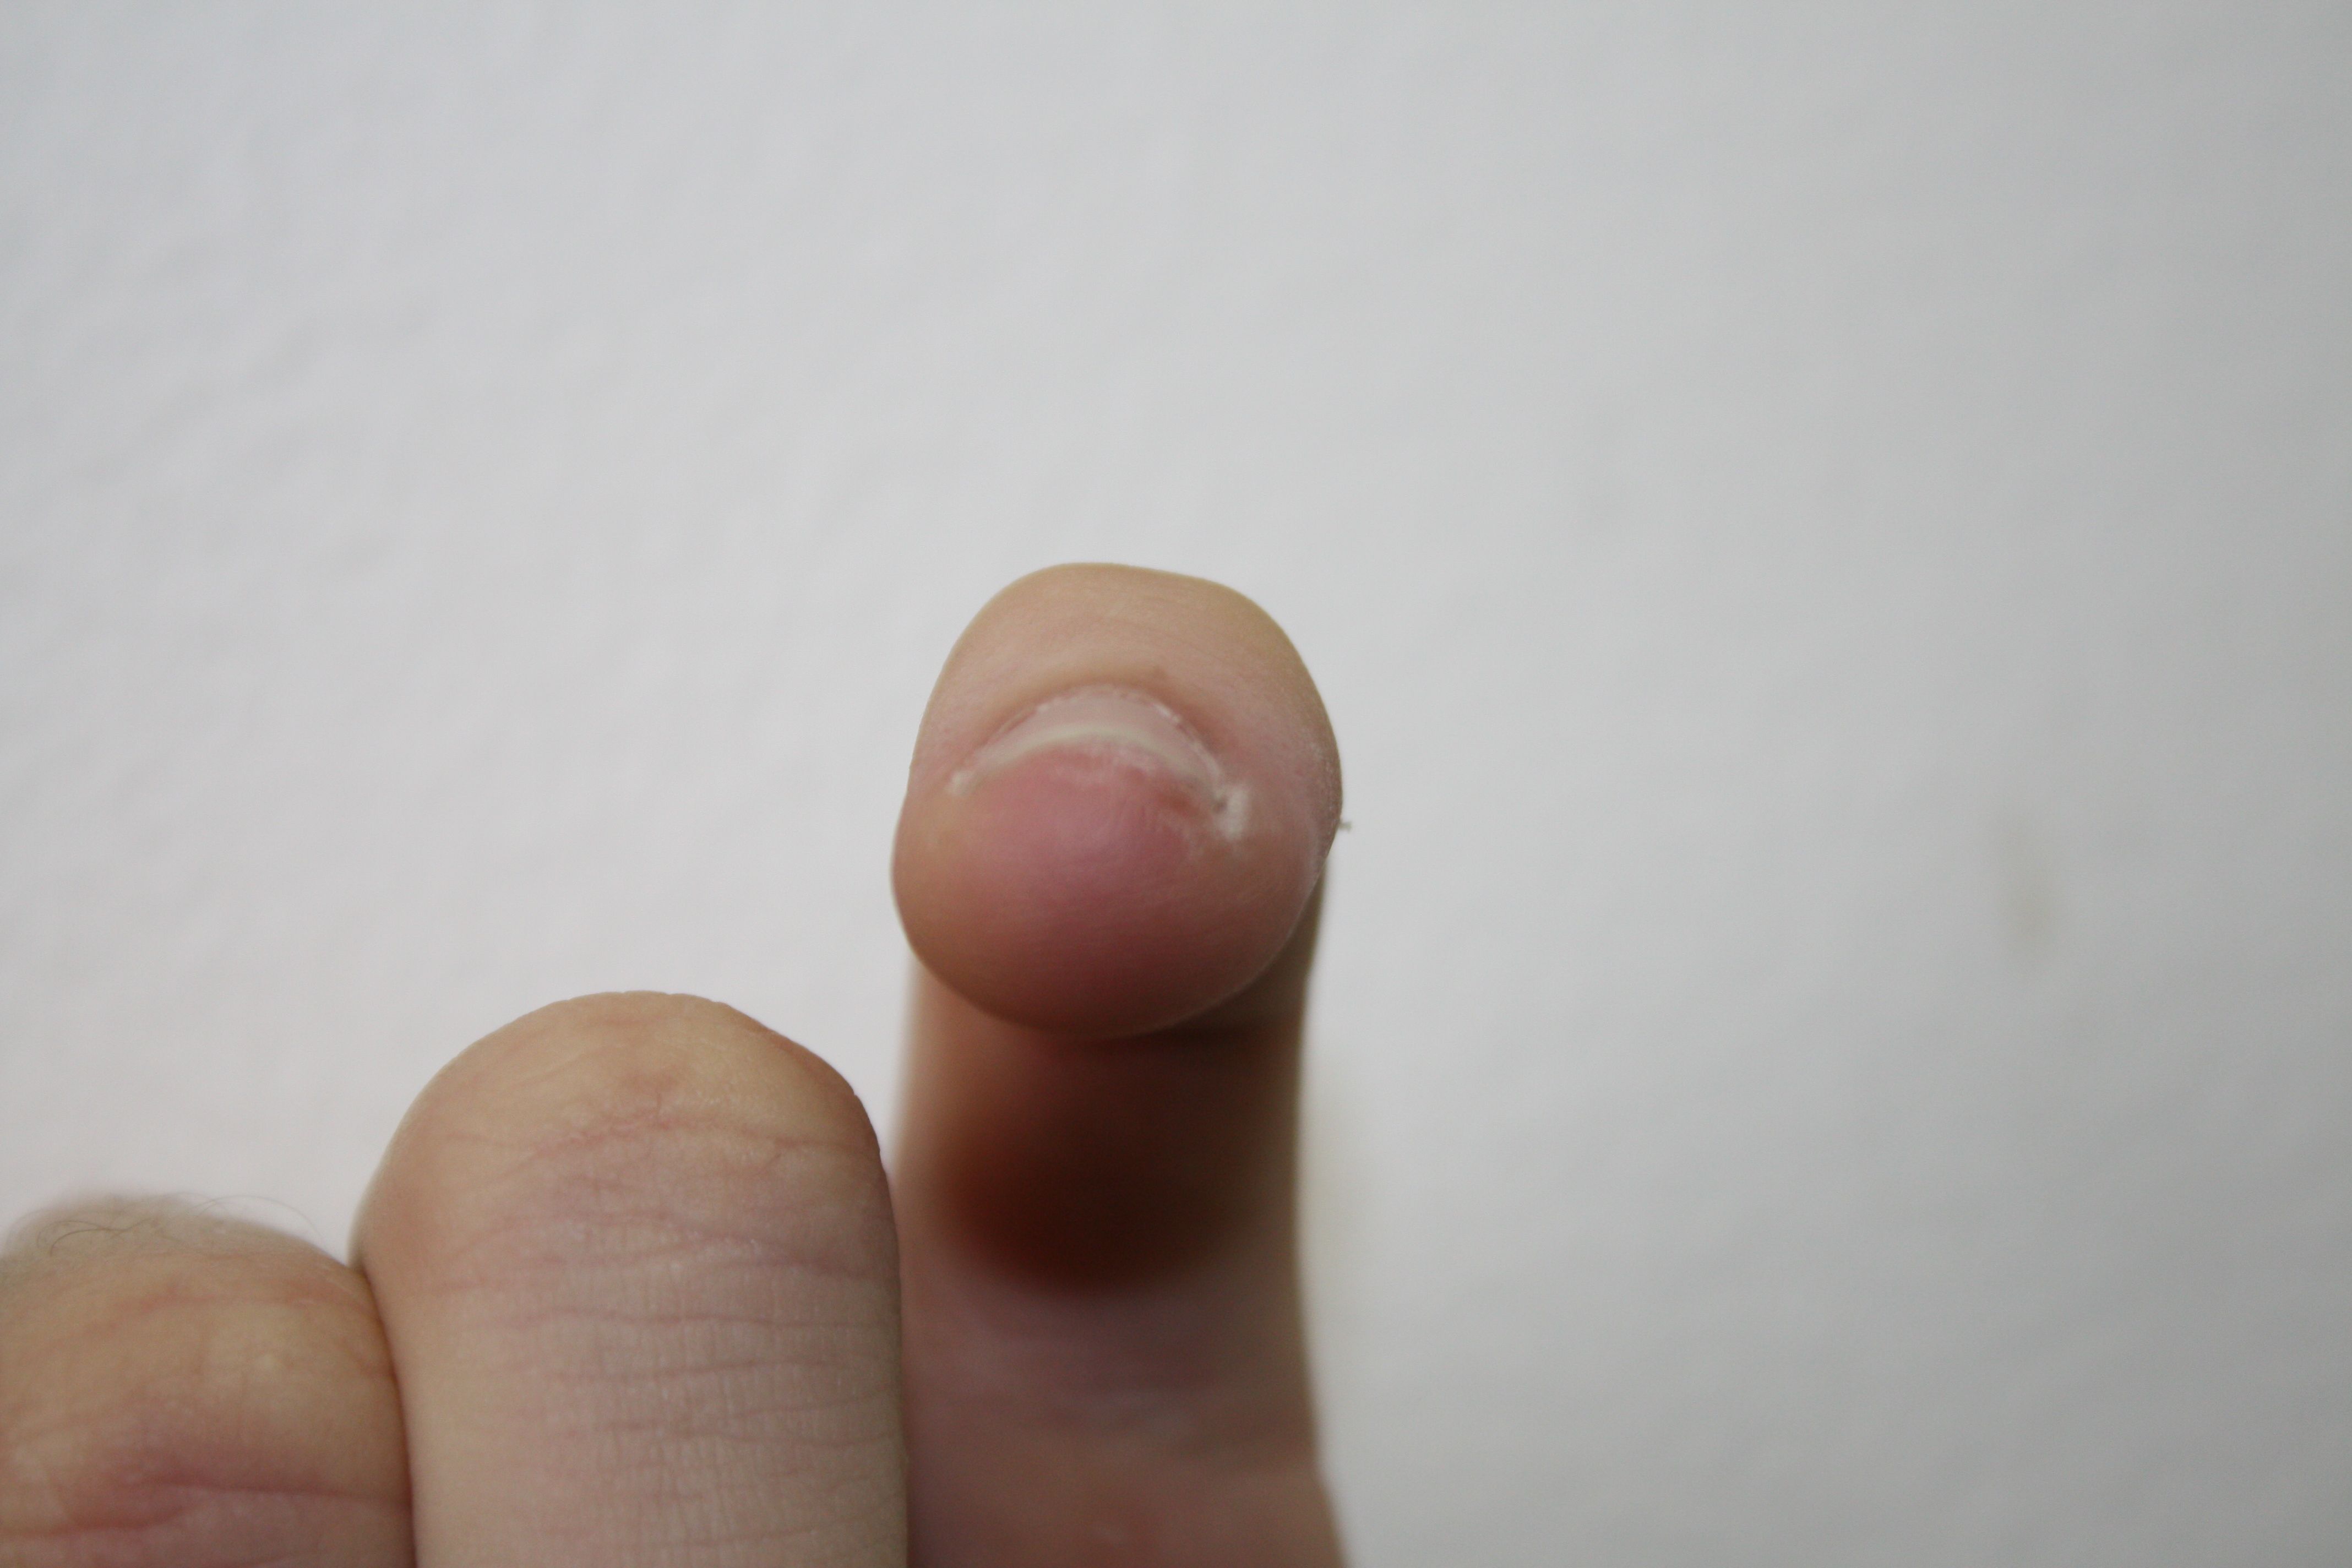 Fingertip pain and sensitivity - Undiagnosed Symptoms - MedHelp